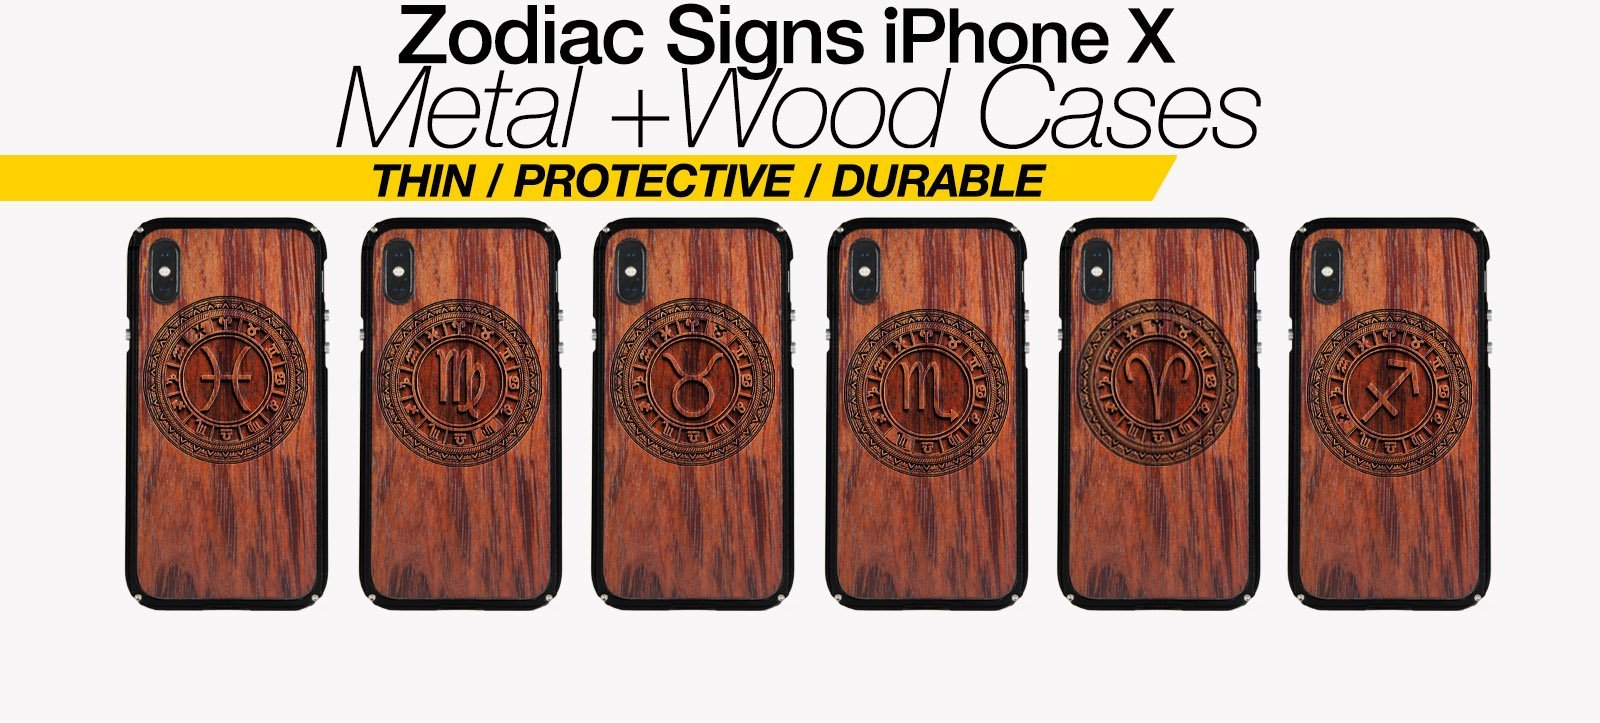 Zodiac Signs iPhone X Cases Best Zodiac Horoscope Metal Wood iPhone X Covers Gifts For Zodiac Lovers Fans Astrology Cases Phone Birthday Gifts For Astrology Lovers